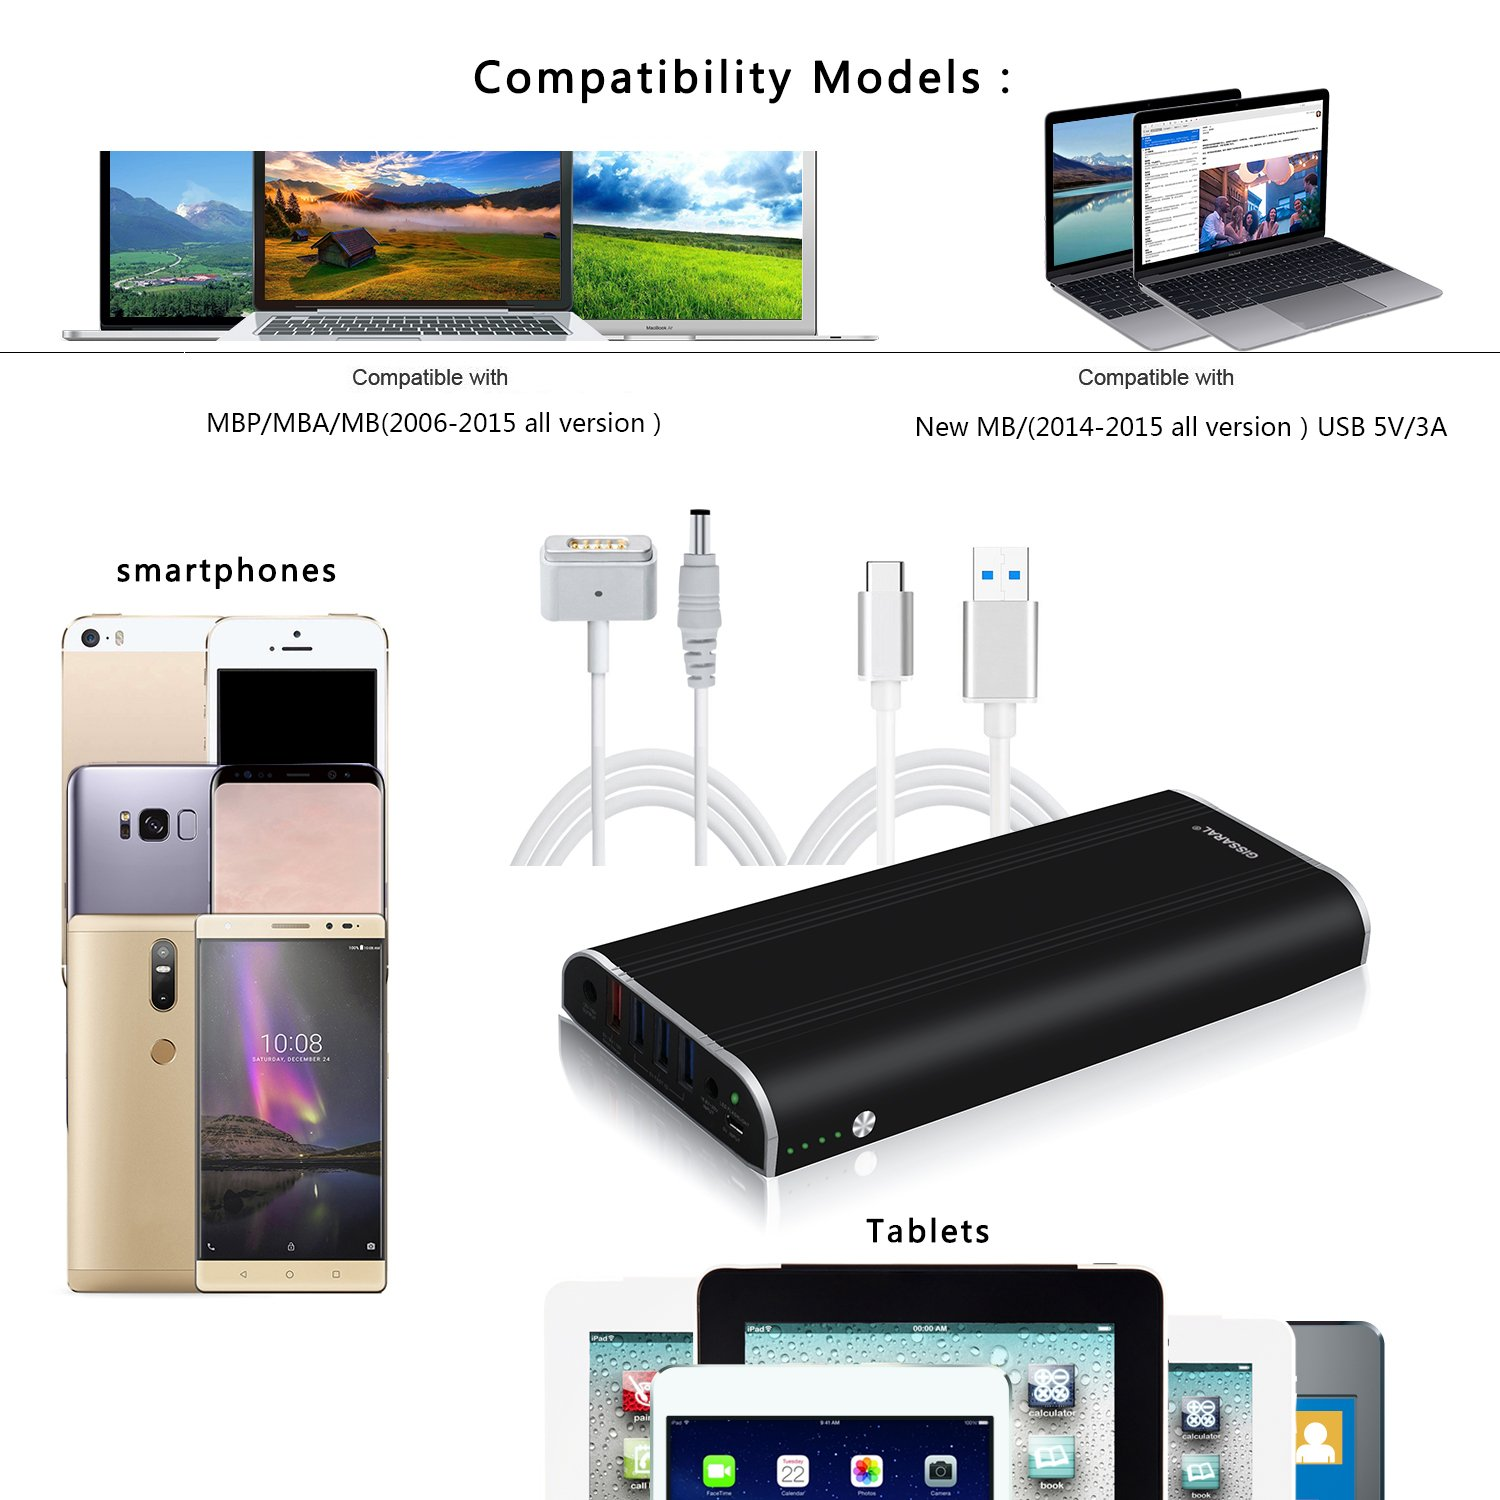 GISSARAL 35000mAh Power Bank External Battery Portable Charger for MacBook Pro MacBook Air, 4 USB Ports Quick Charge for New MacBook Tablets or Smartphones -Black by GISSARAL (Image #3)